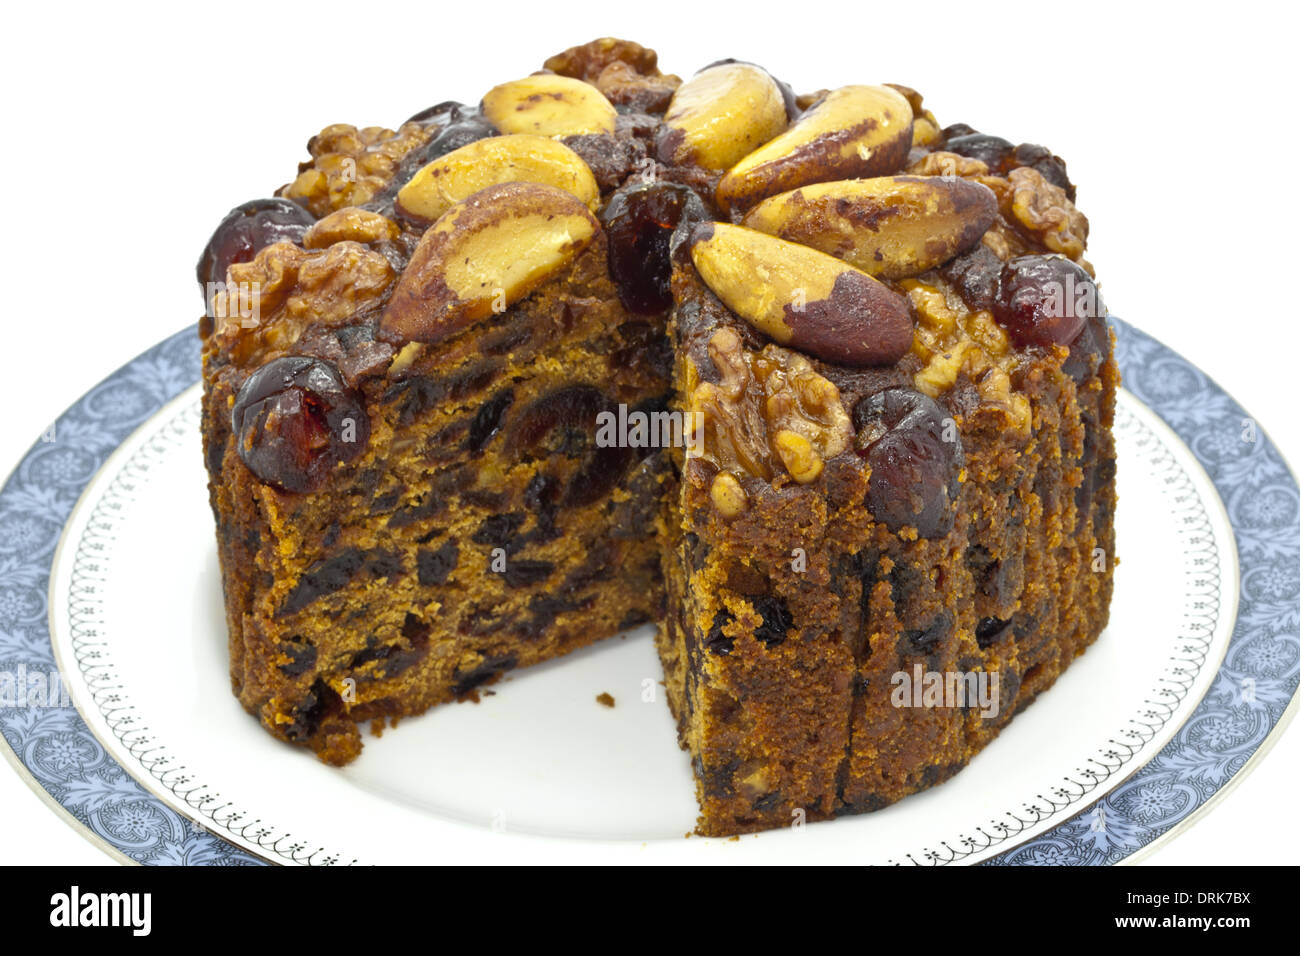 Rich fruit cake decorated with glace  cherries and nuts. - Stock Image